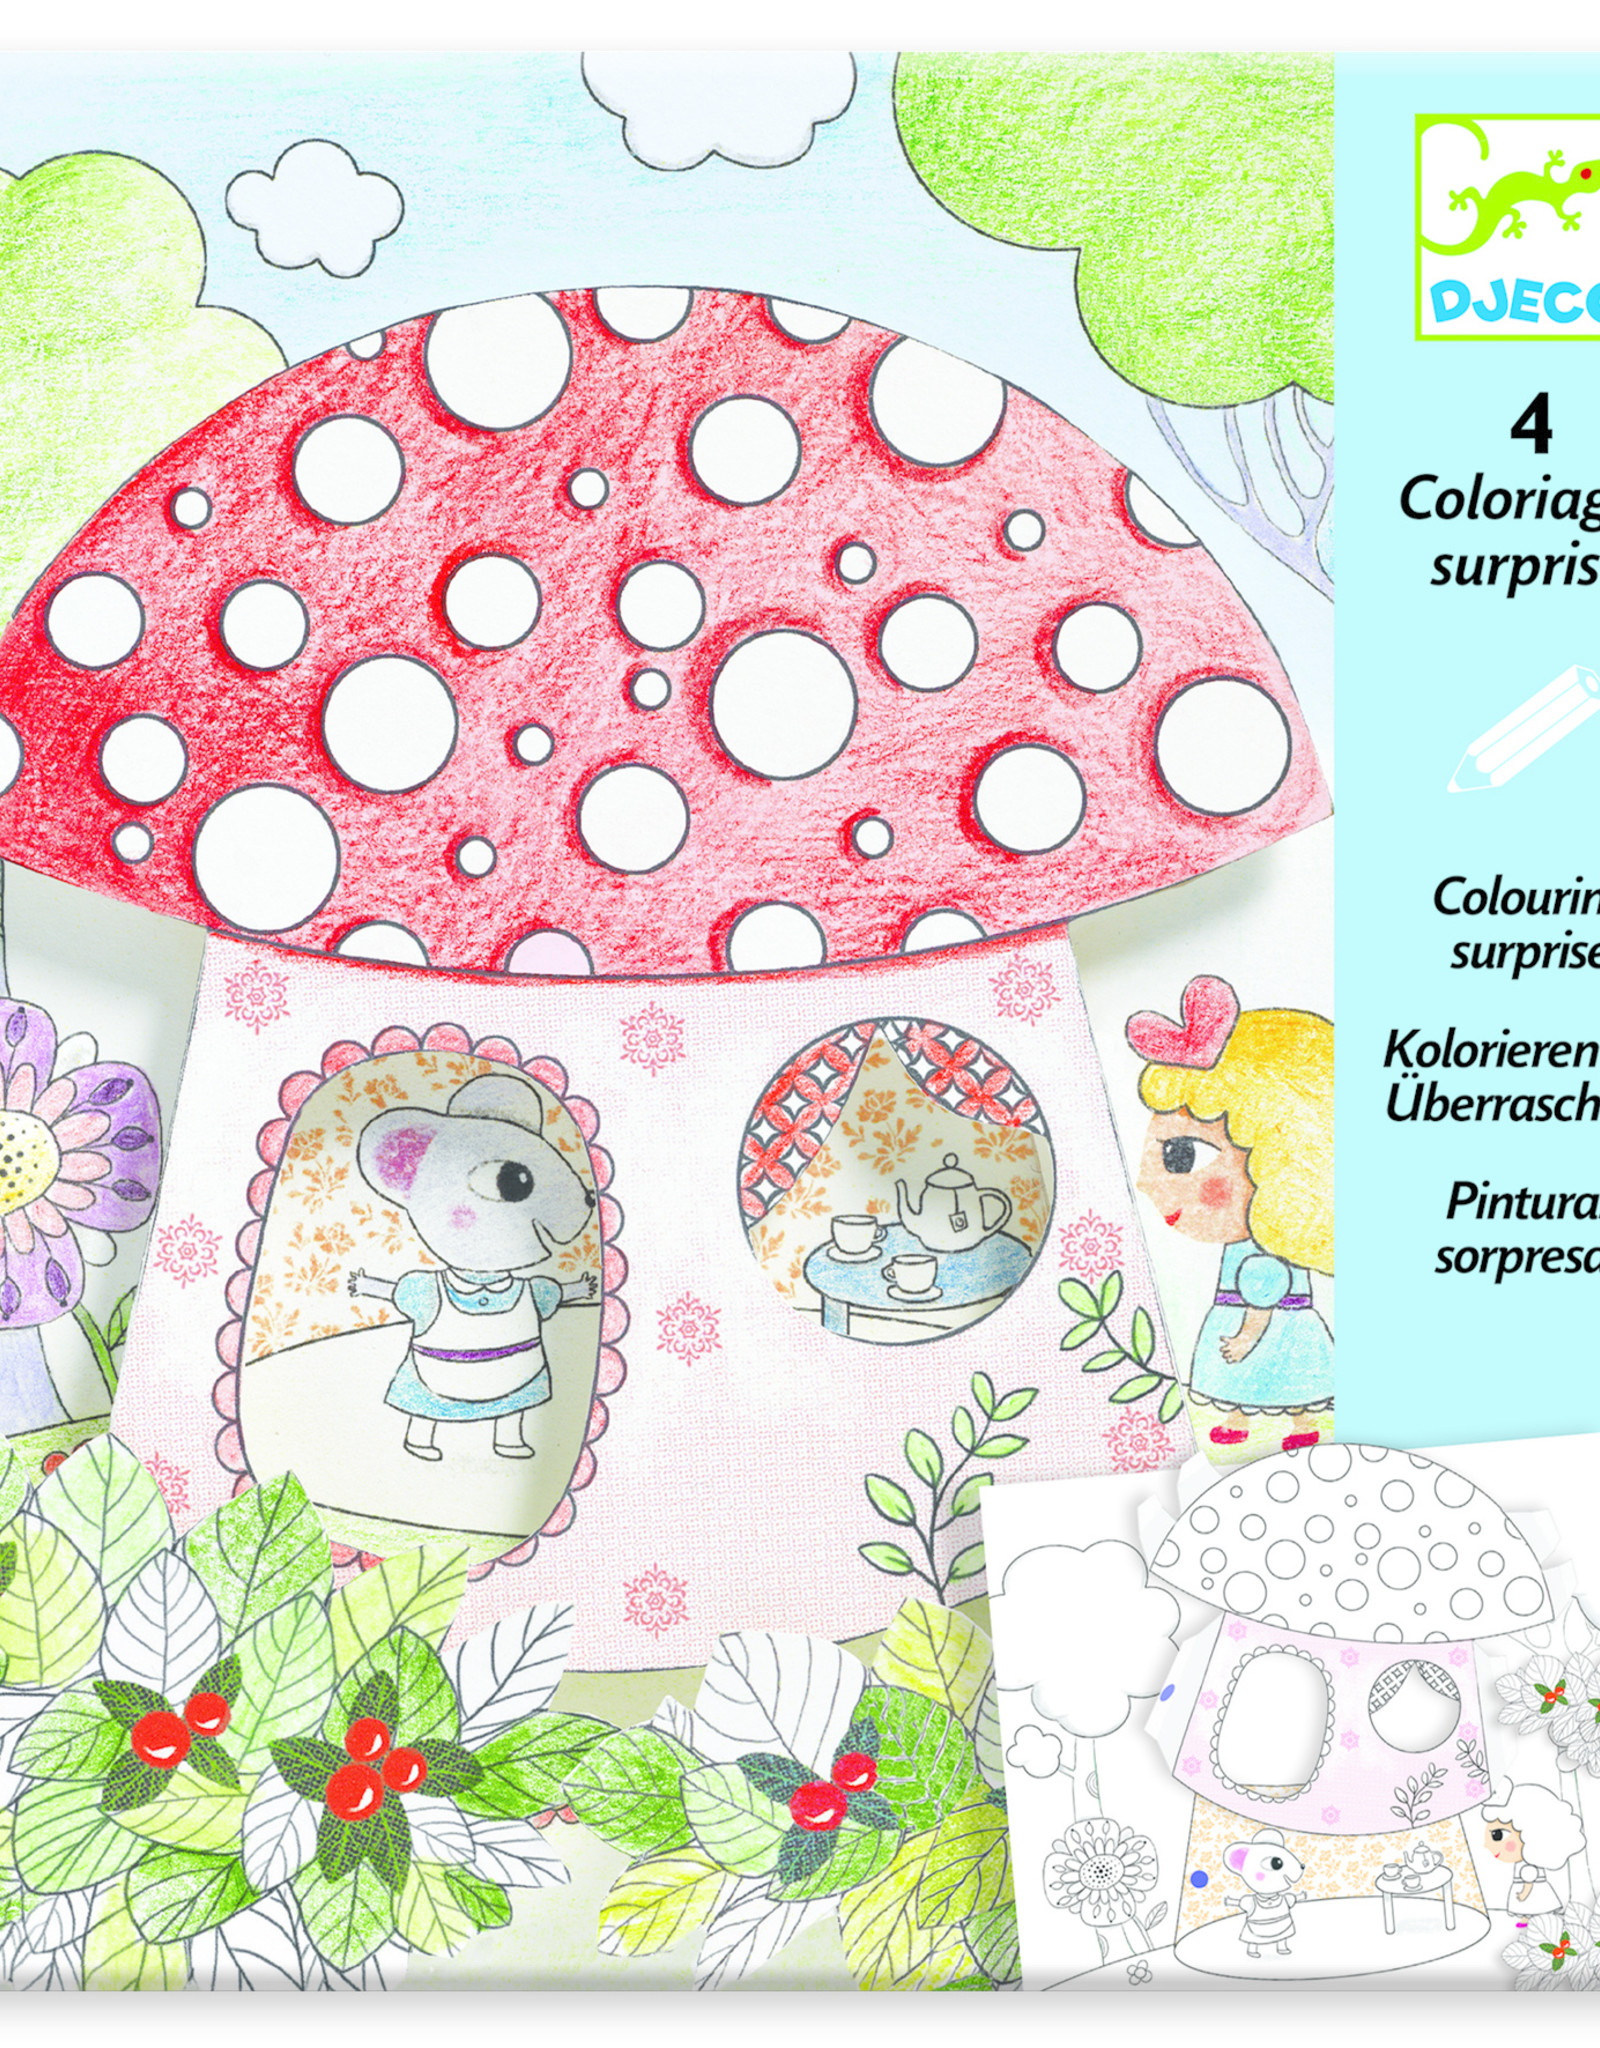 Djeco Colouring Surprise Thumbelina